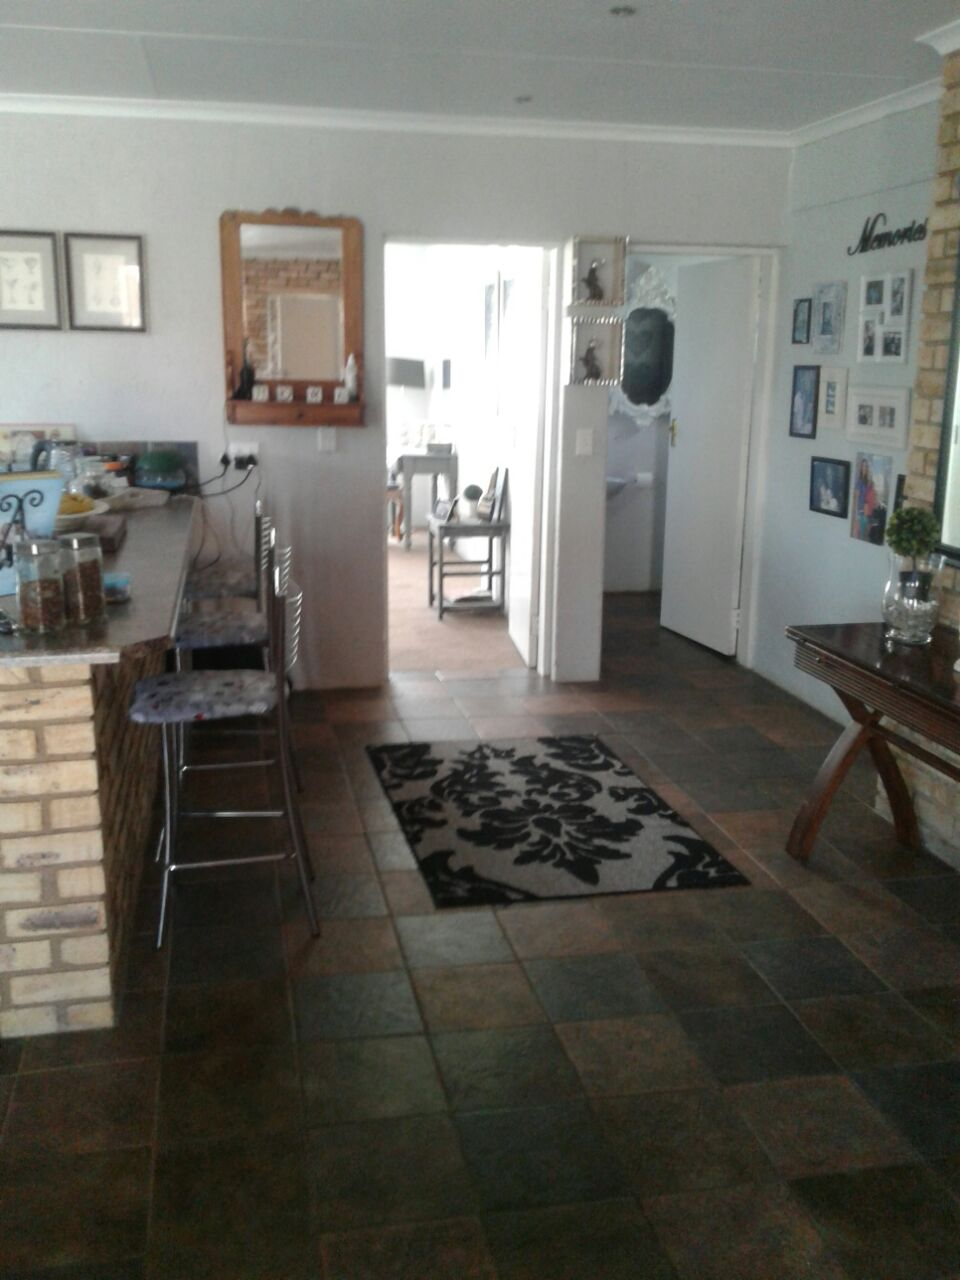 Krugersdorp. Very Spacious 2 bedroom house to let. Neat. Beautiful. Central. Secure.